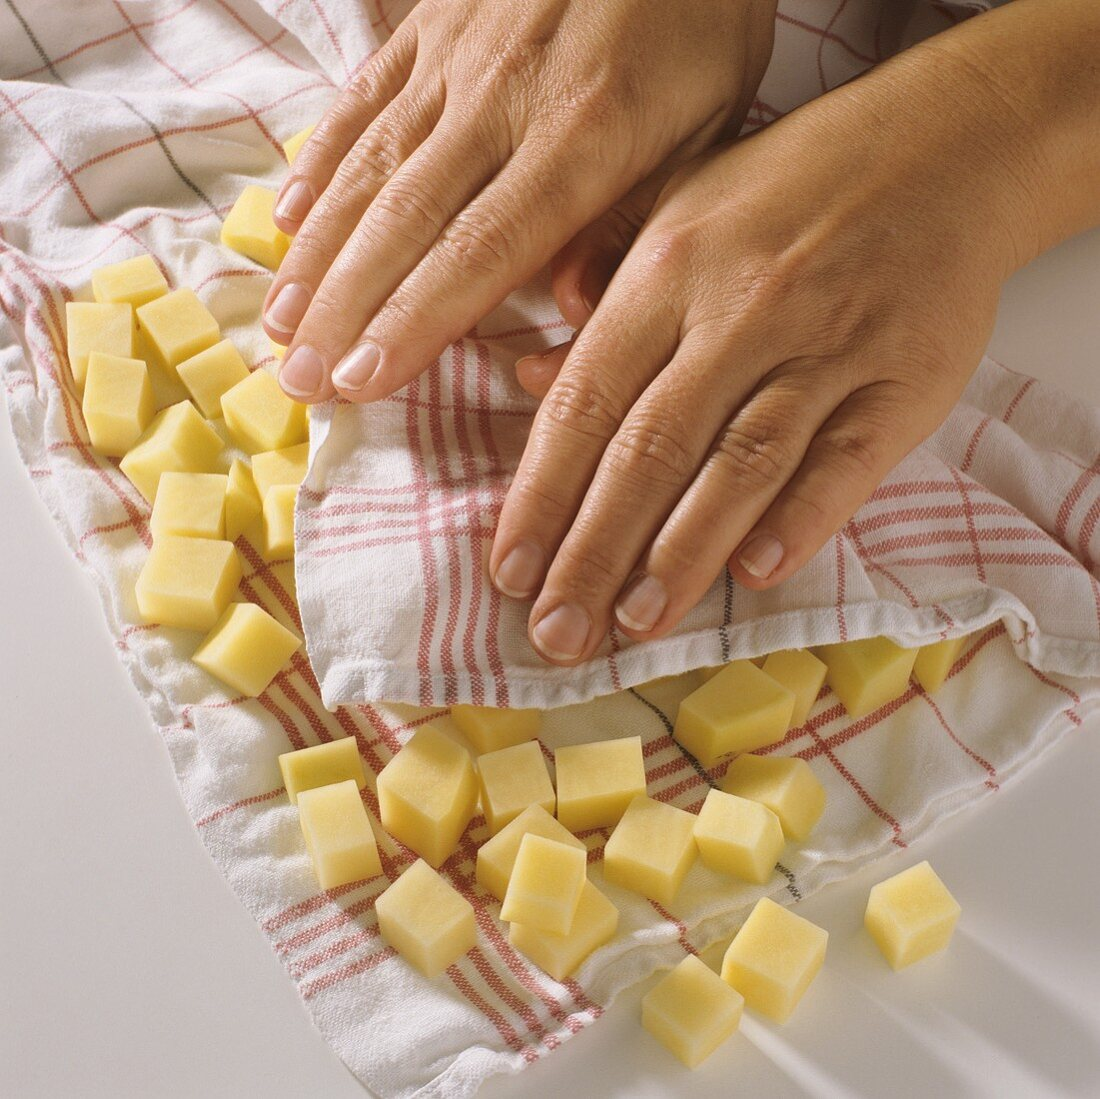 Drying raw potato cubes in kitchen cloth